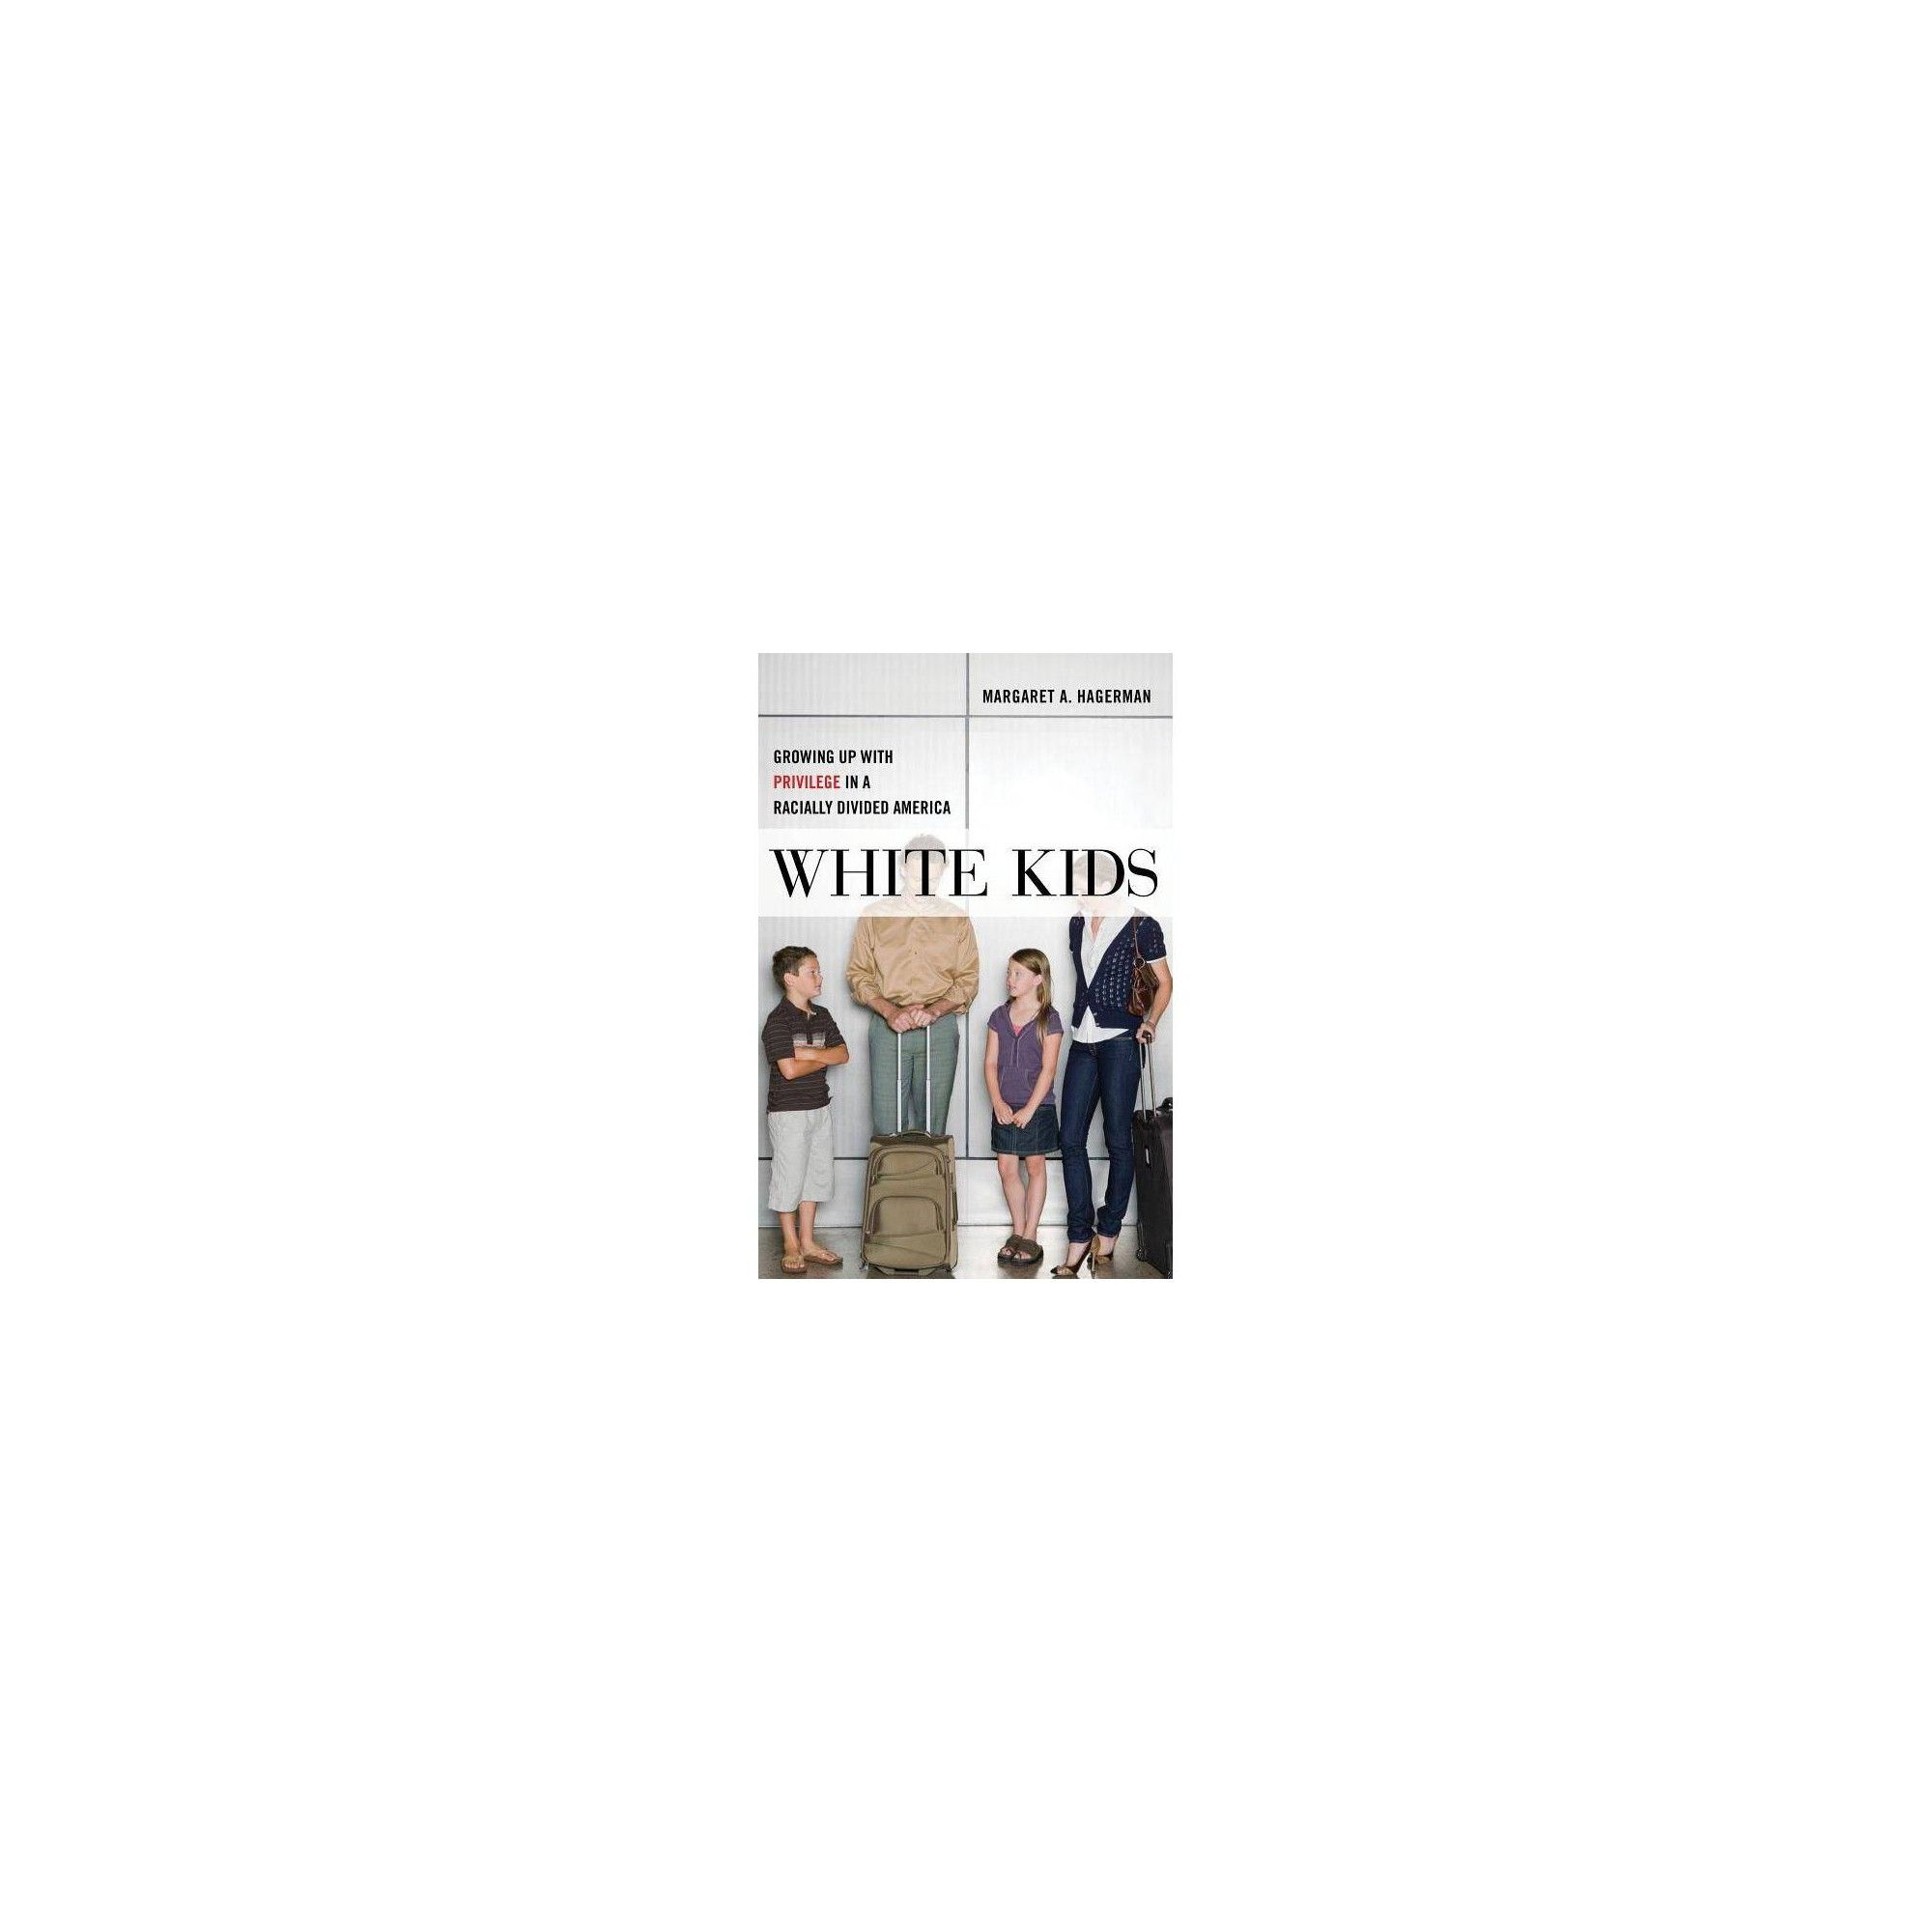 White Kids - (Critical Perspectives on Youth) by Margaret A Hagerman (Hardcover)